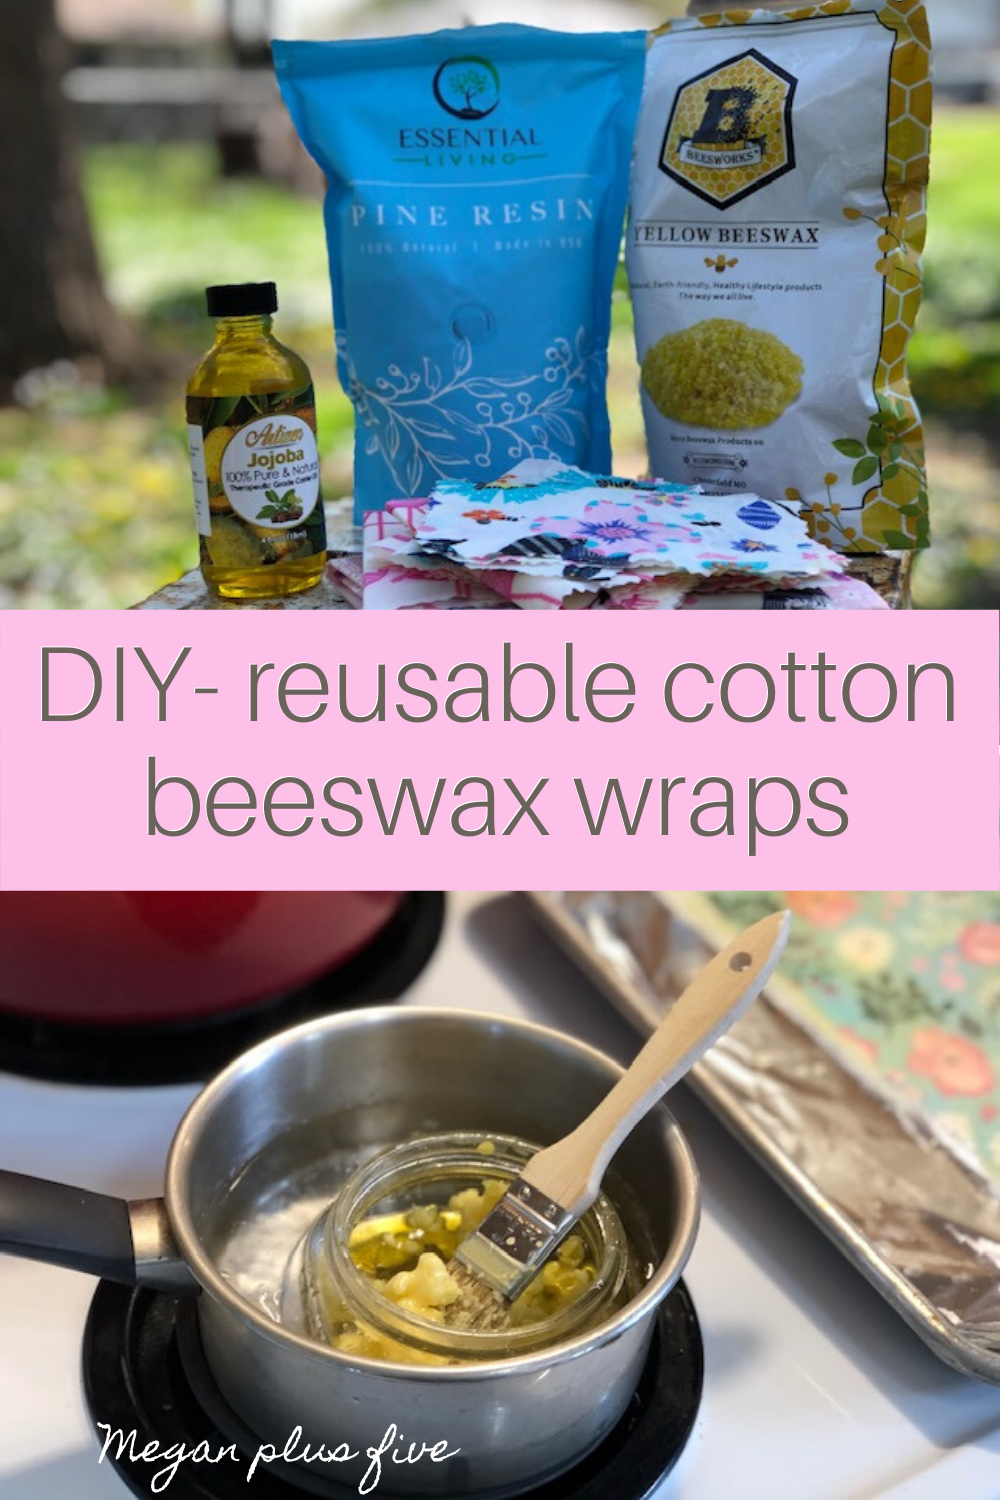 How to make resuable saran wrap. DIY beeswax cotton food wraps made with pine resin. Save money in the kitchen by making your own fabric food wraps.